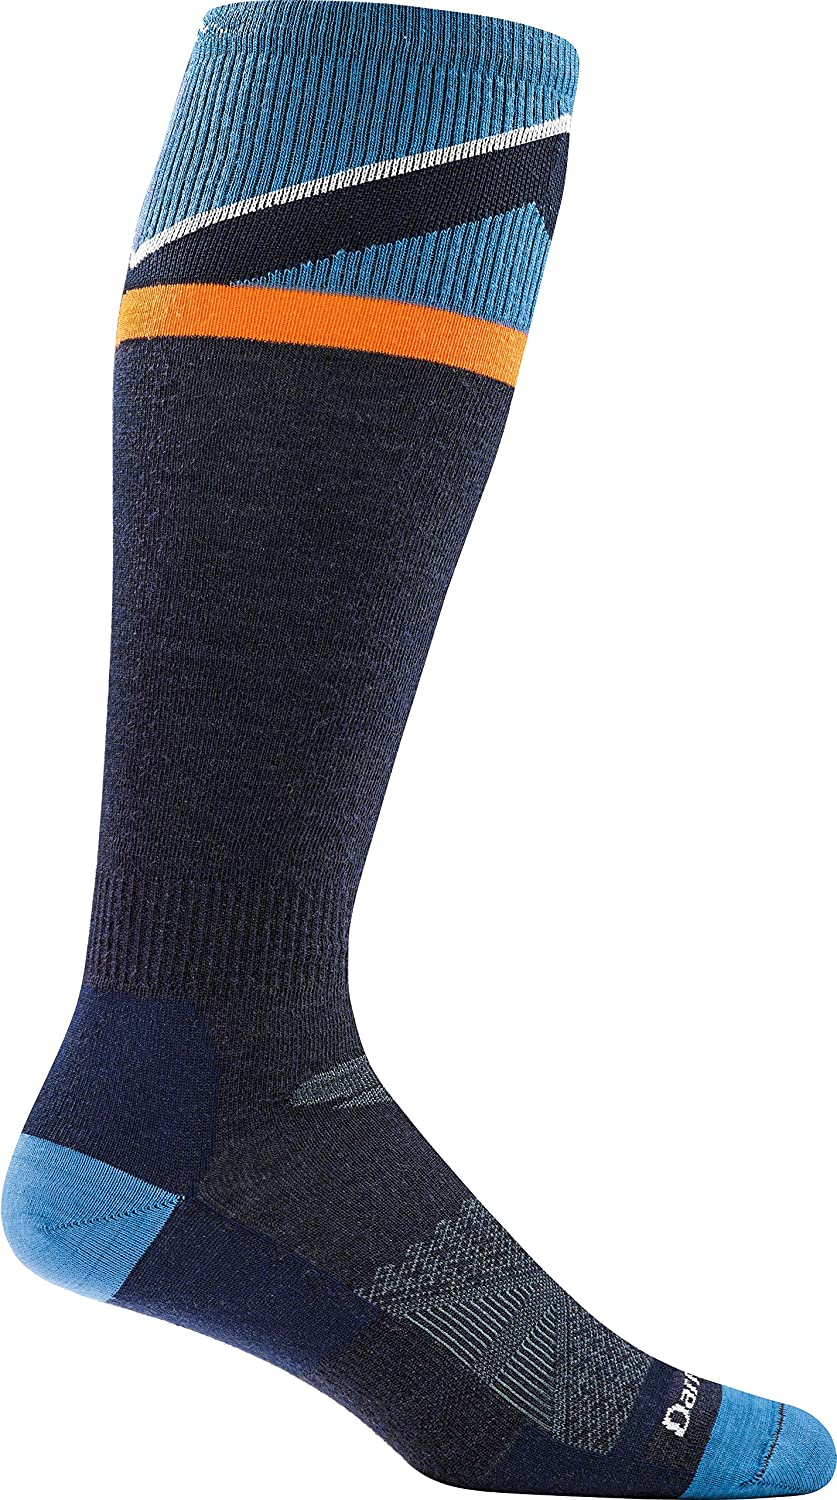 Darn Tough 1873 Men's Merino Wool Over-the-Calf Cushion Socks